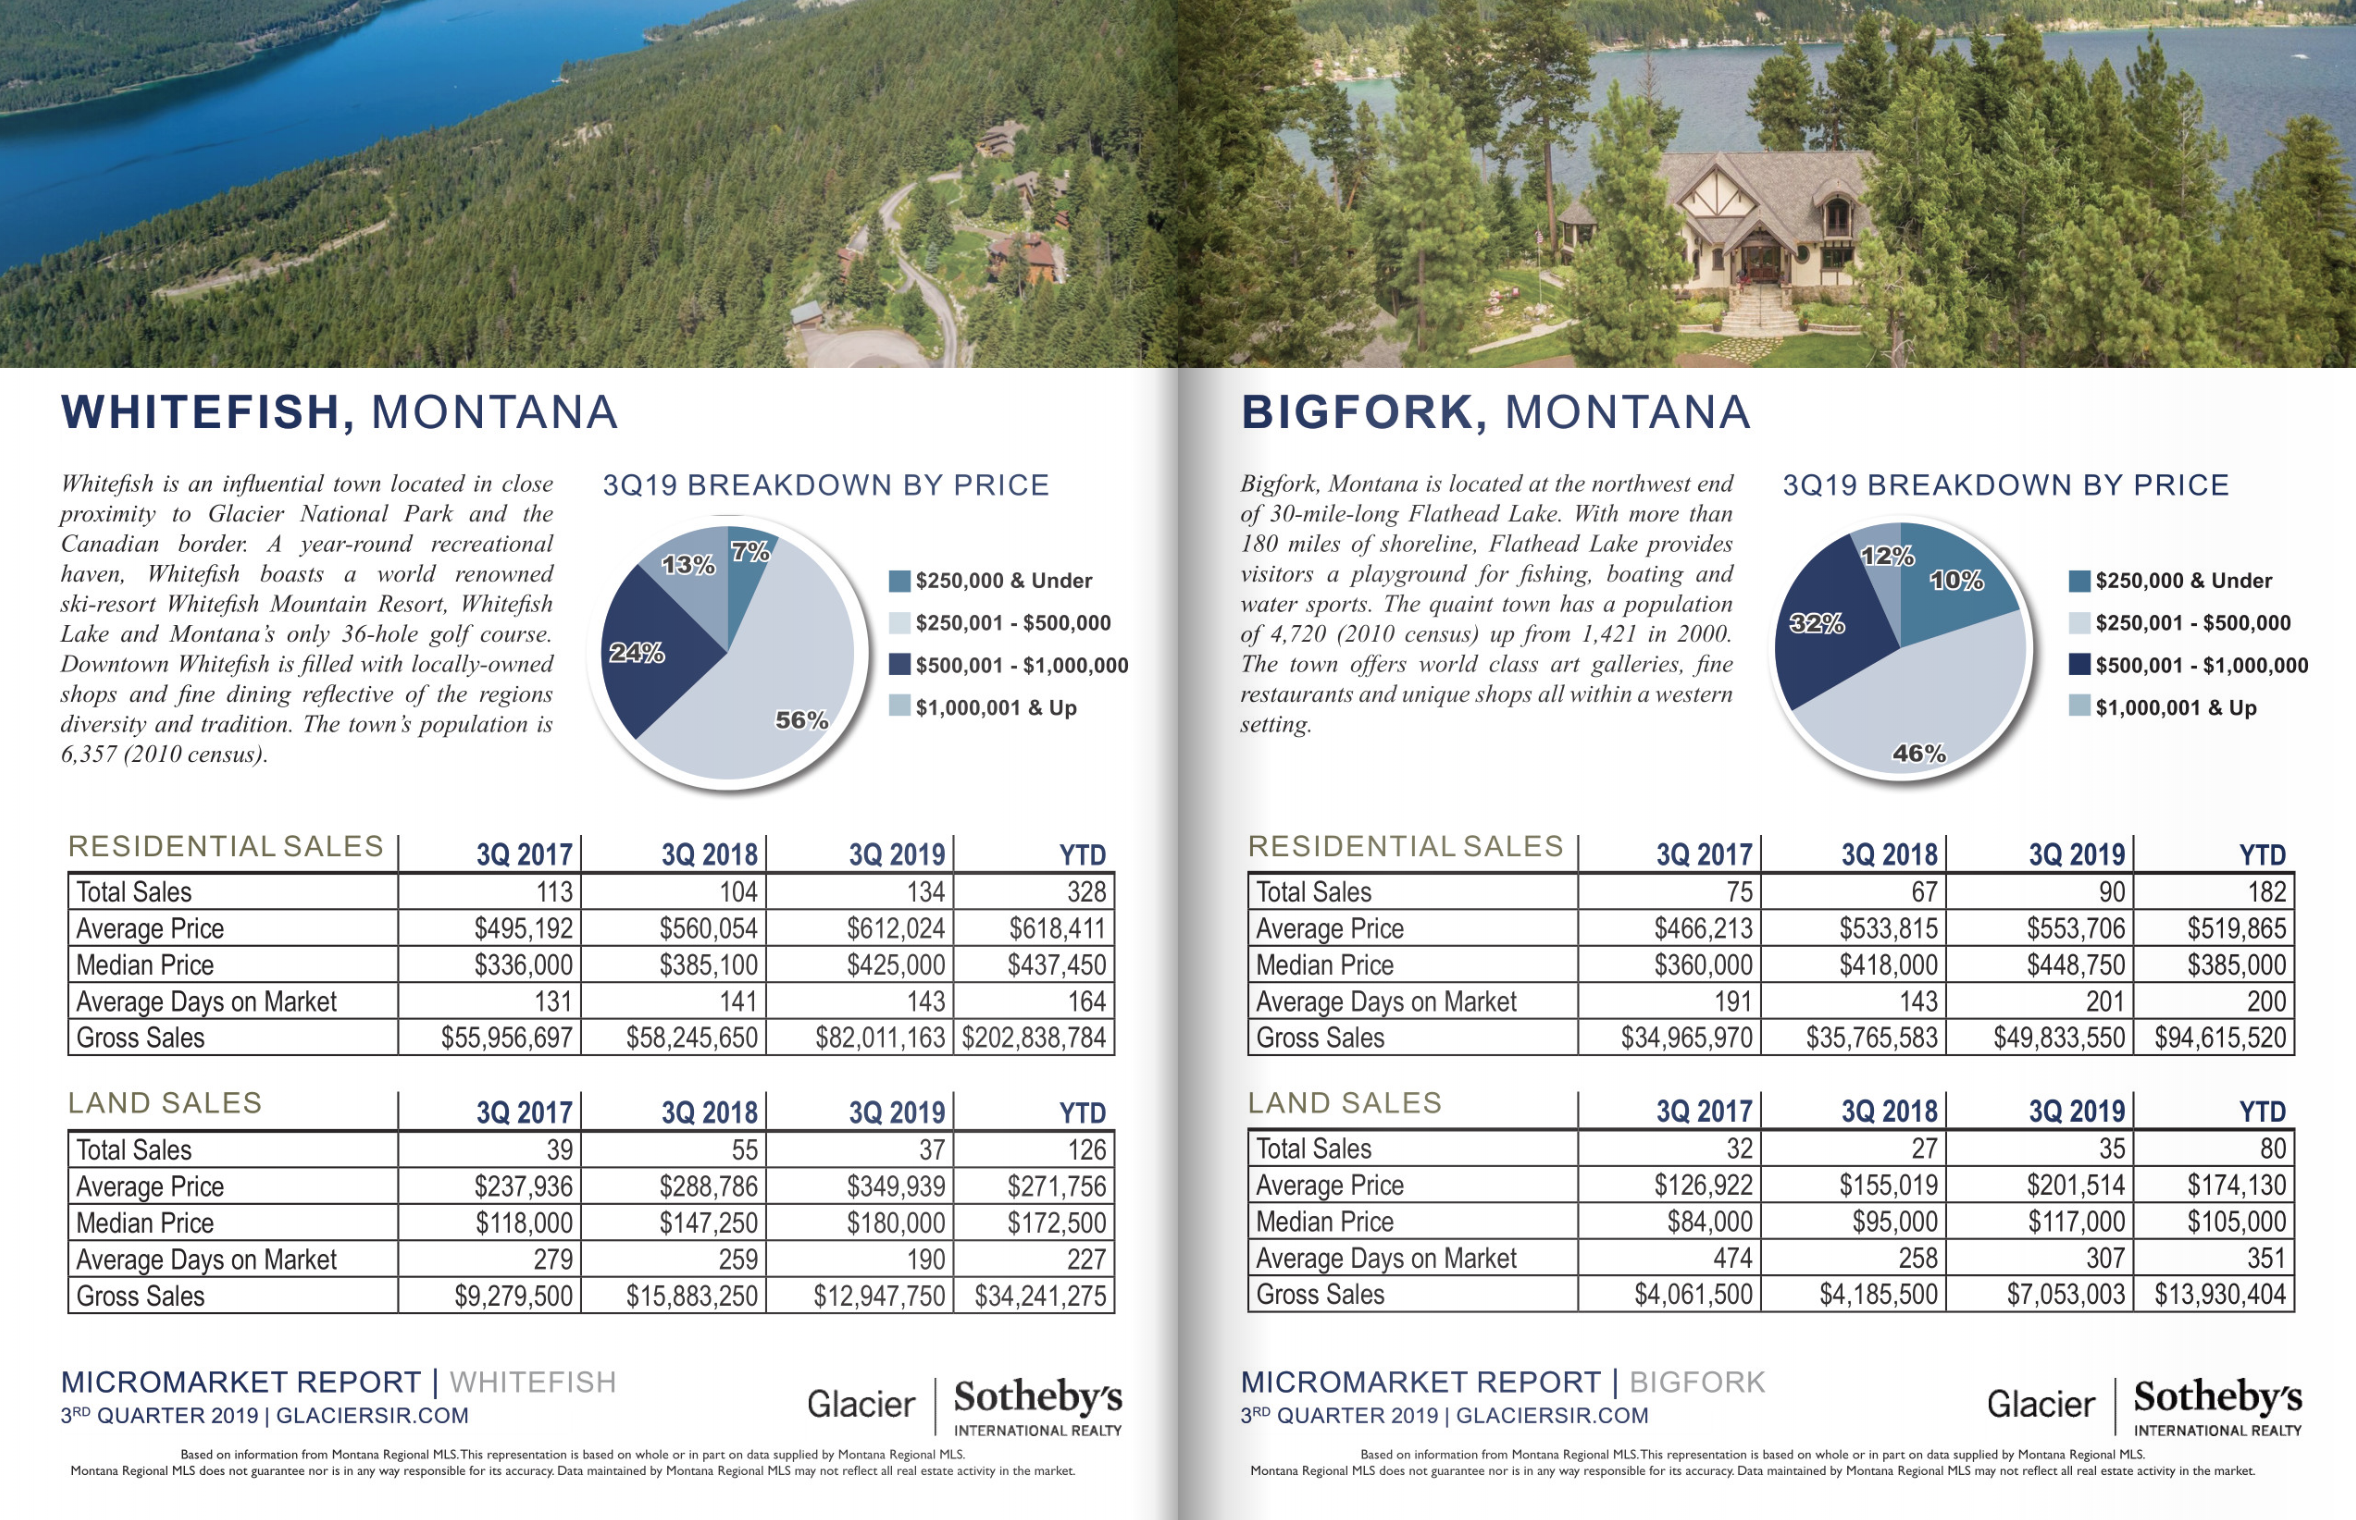 In the 3rd Quarter Whitefish residential sales were over $82 million brining the YTD total to $202,838,784